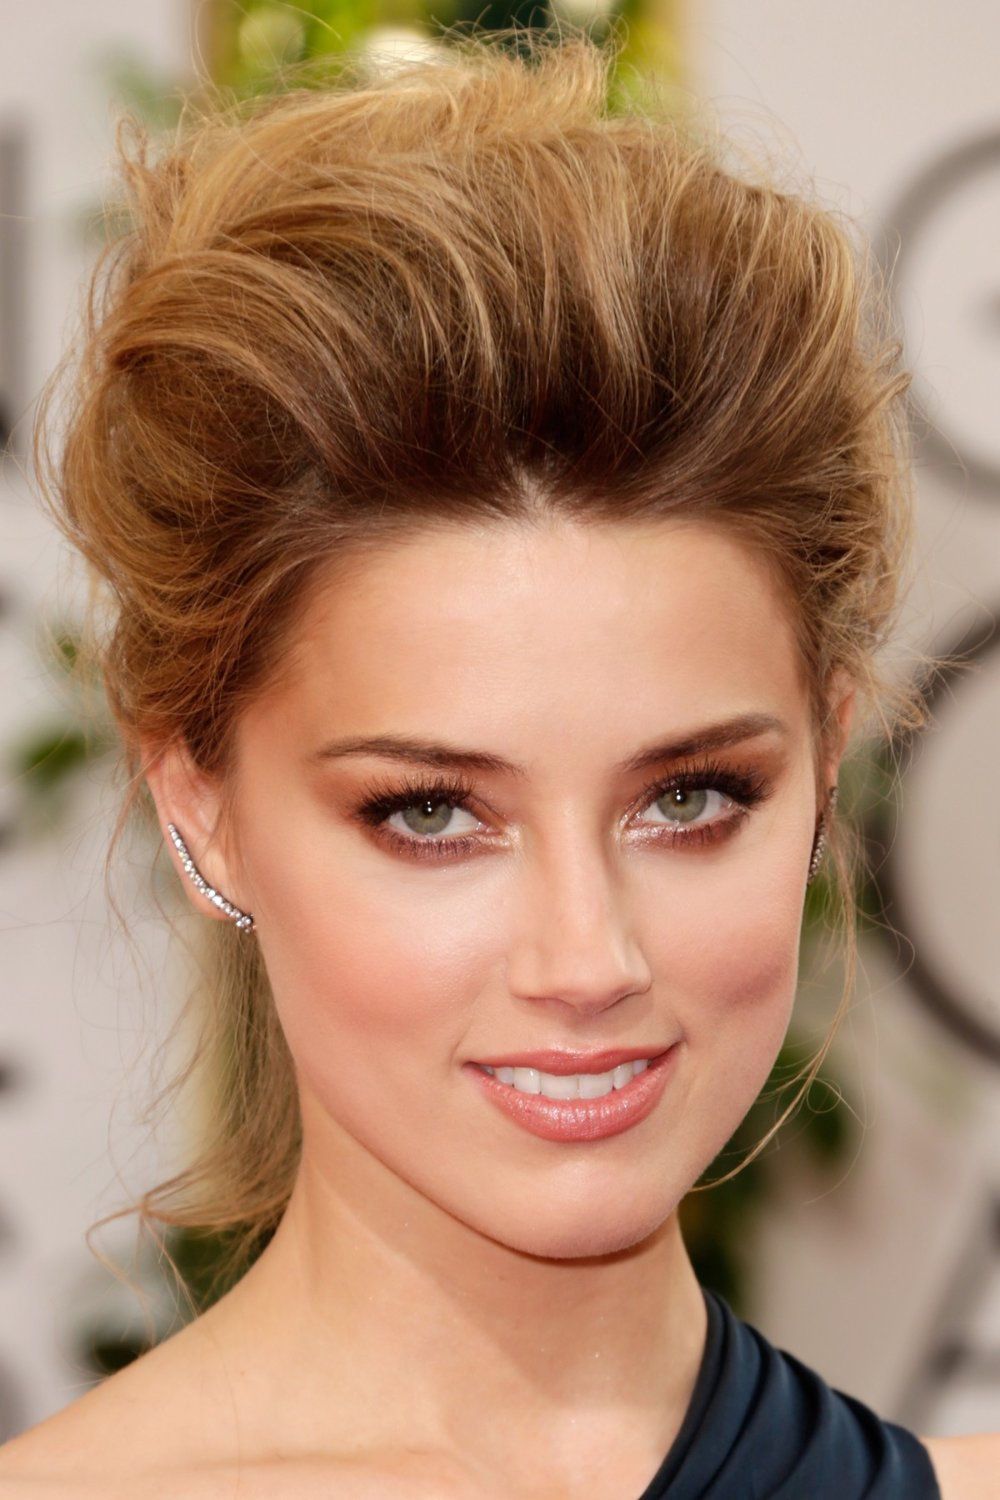 eyes-how-to-do-your-makeup-for-wedding-guest-beauty-amberheard-at-the-golden-globes-smokey-brown-eyeshadow.jpg